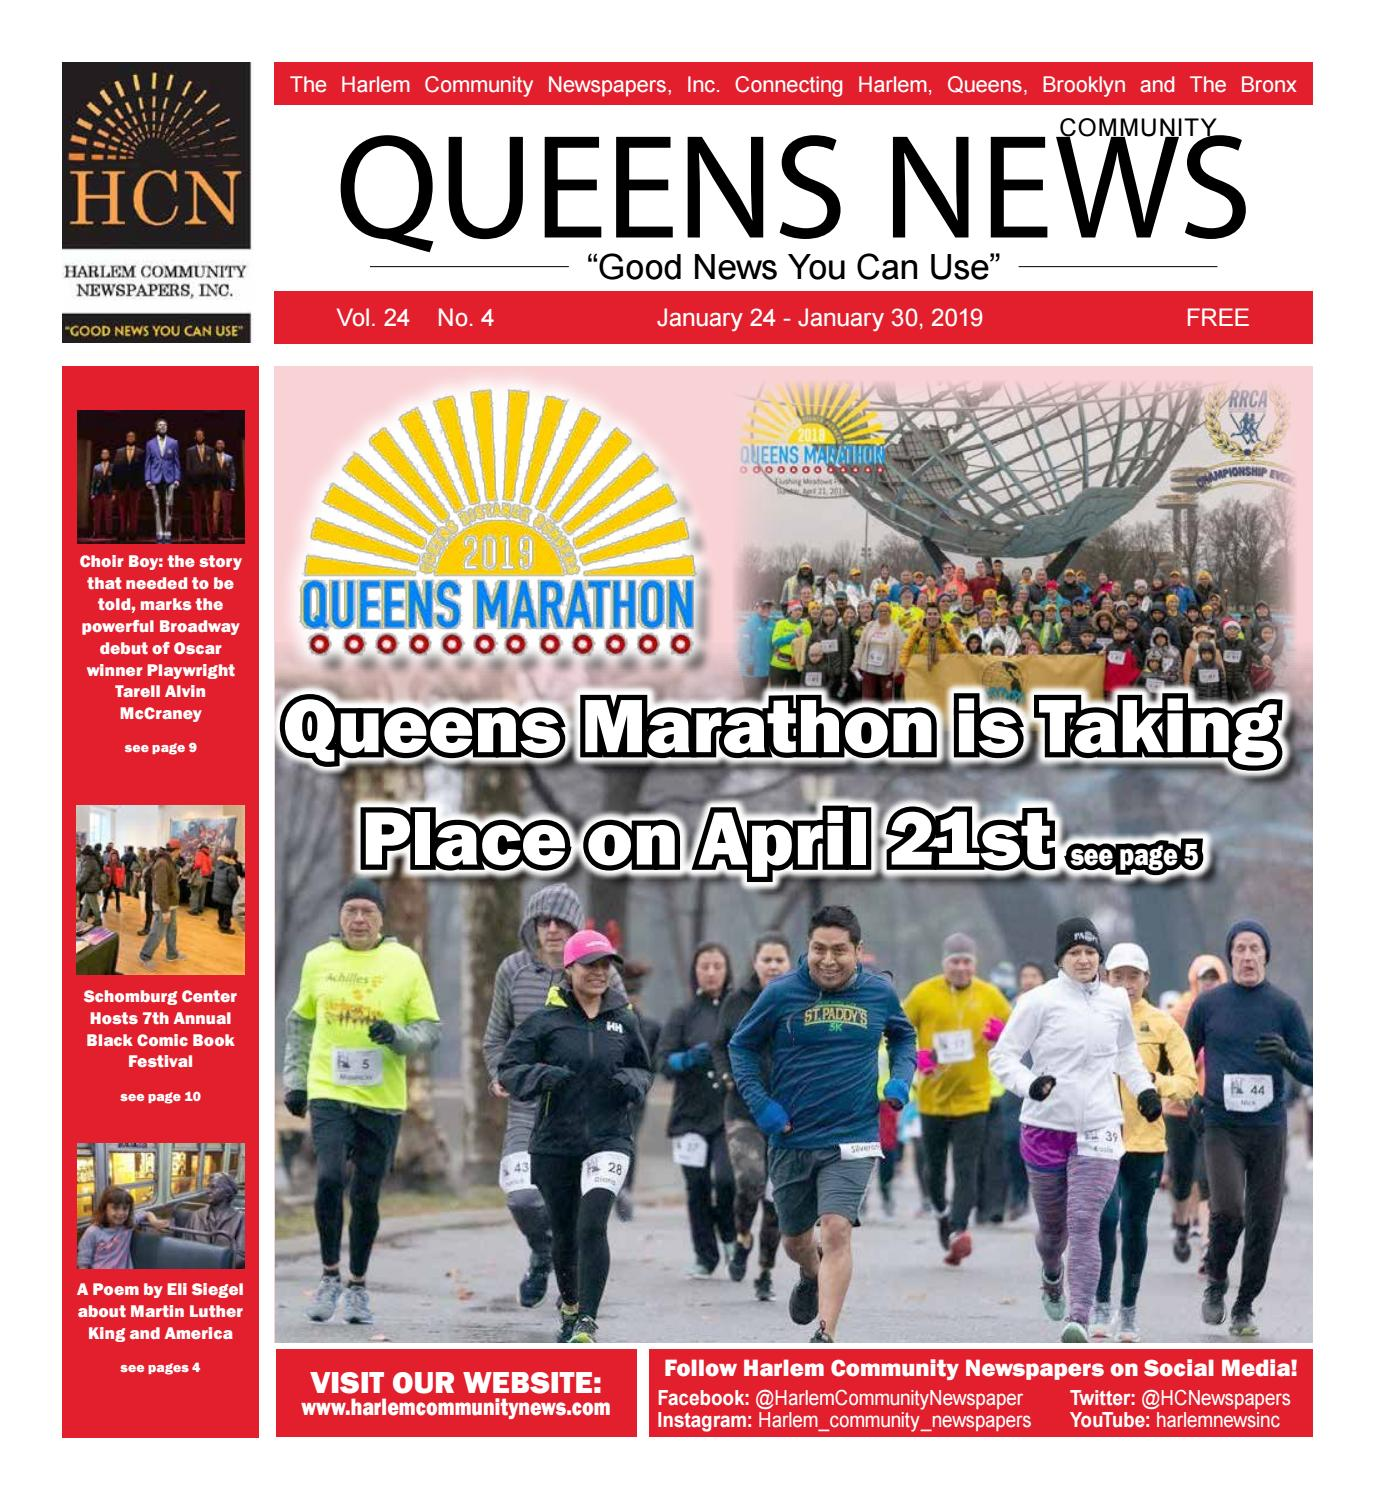 Queens Community Newspapers | January 24, 2019 by Mike Kurov